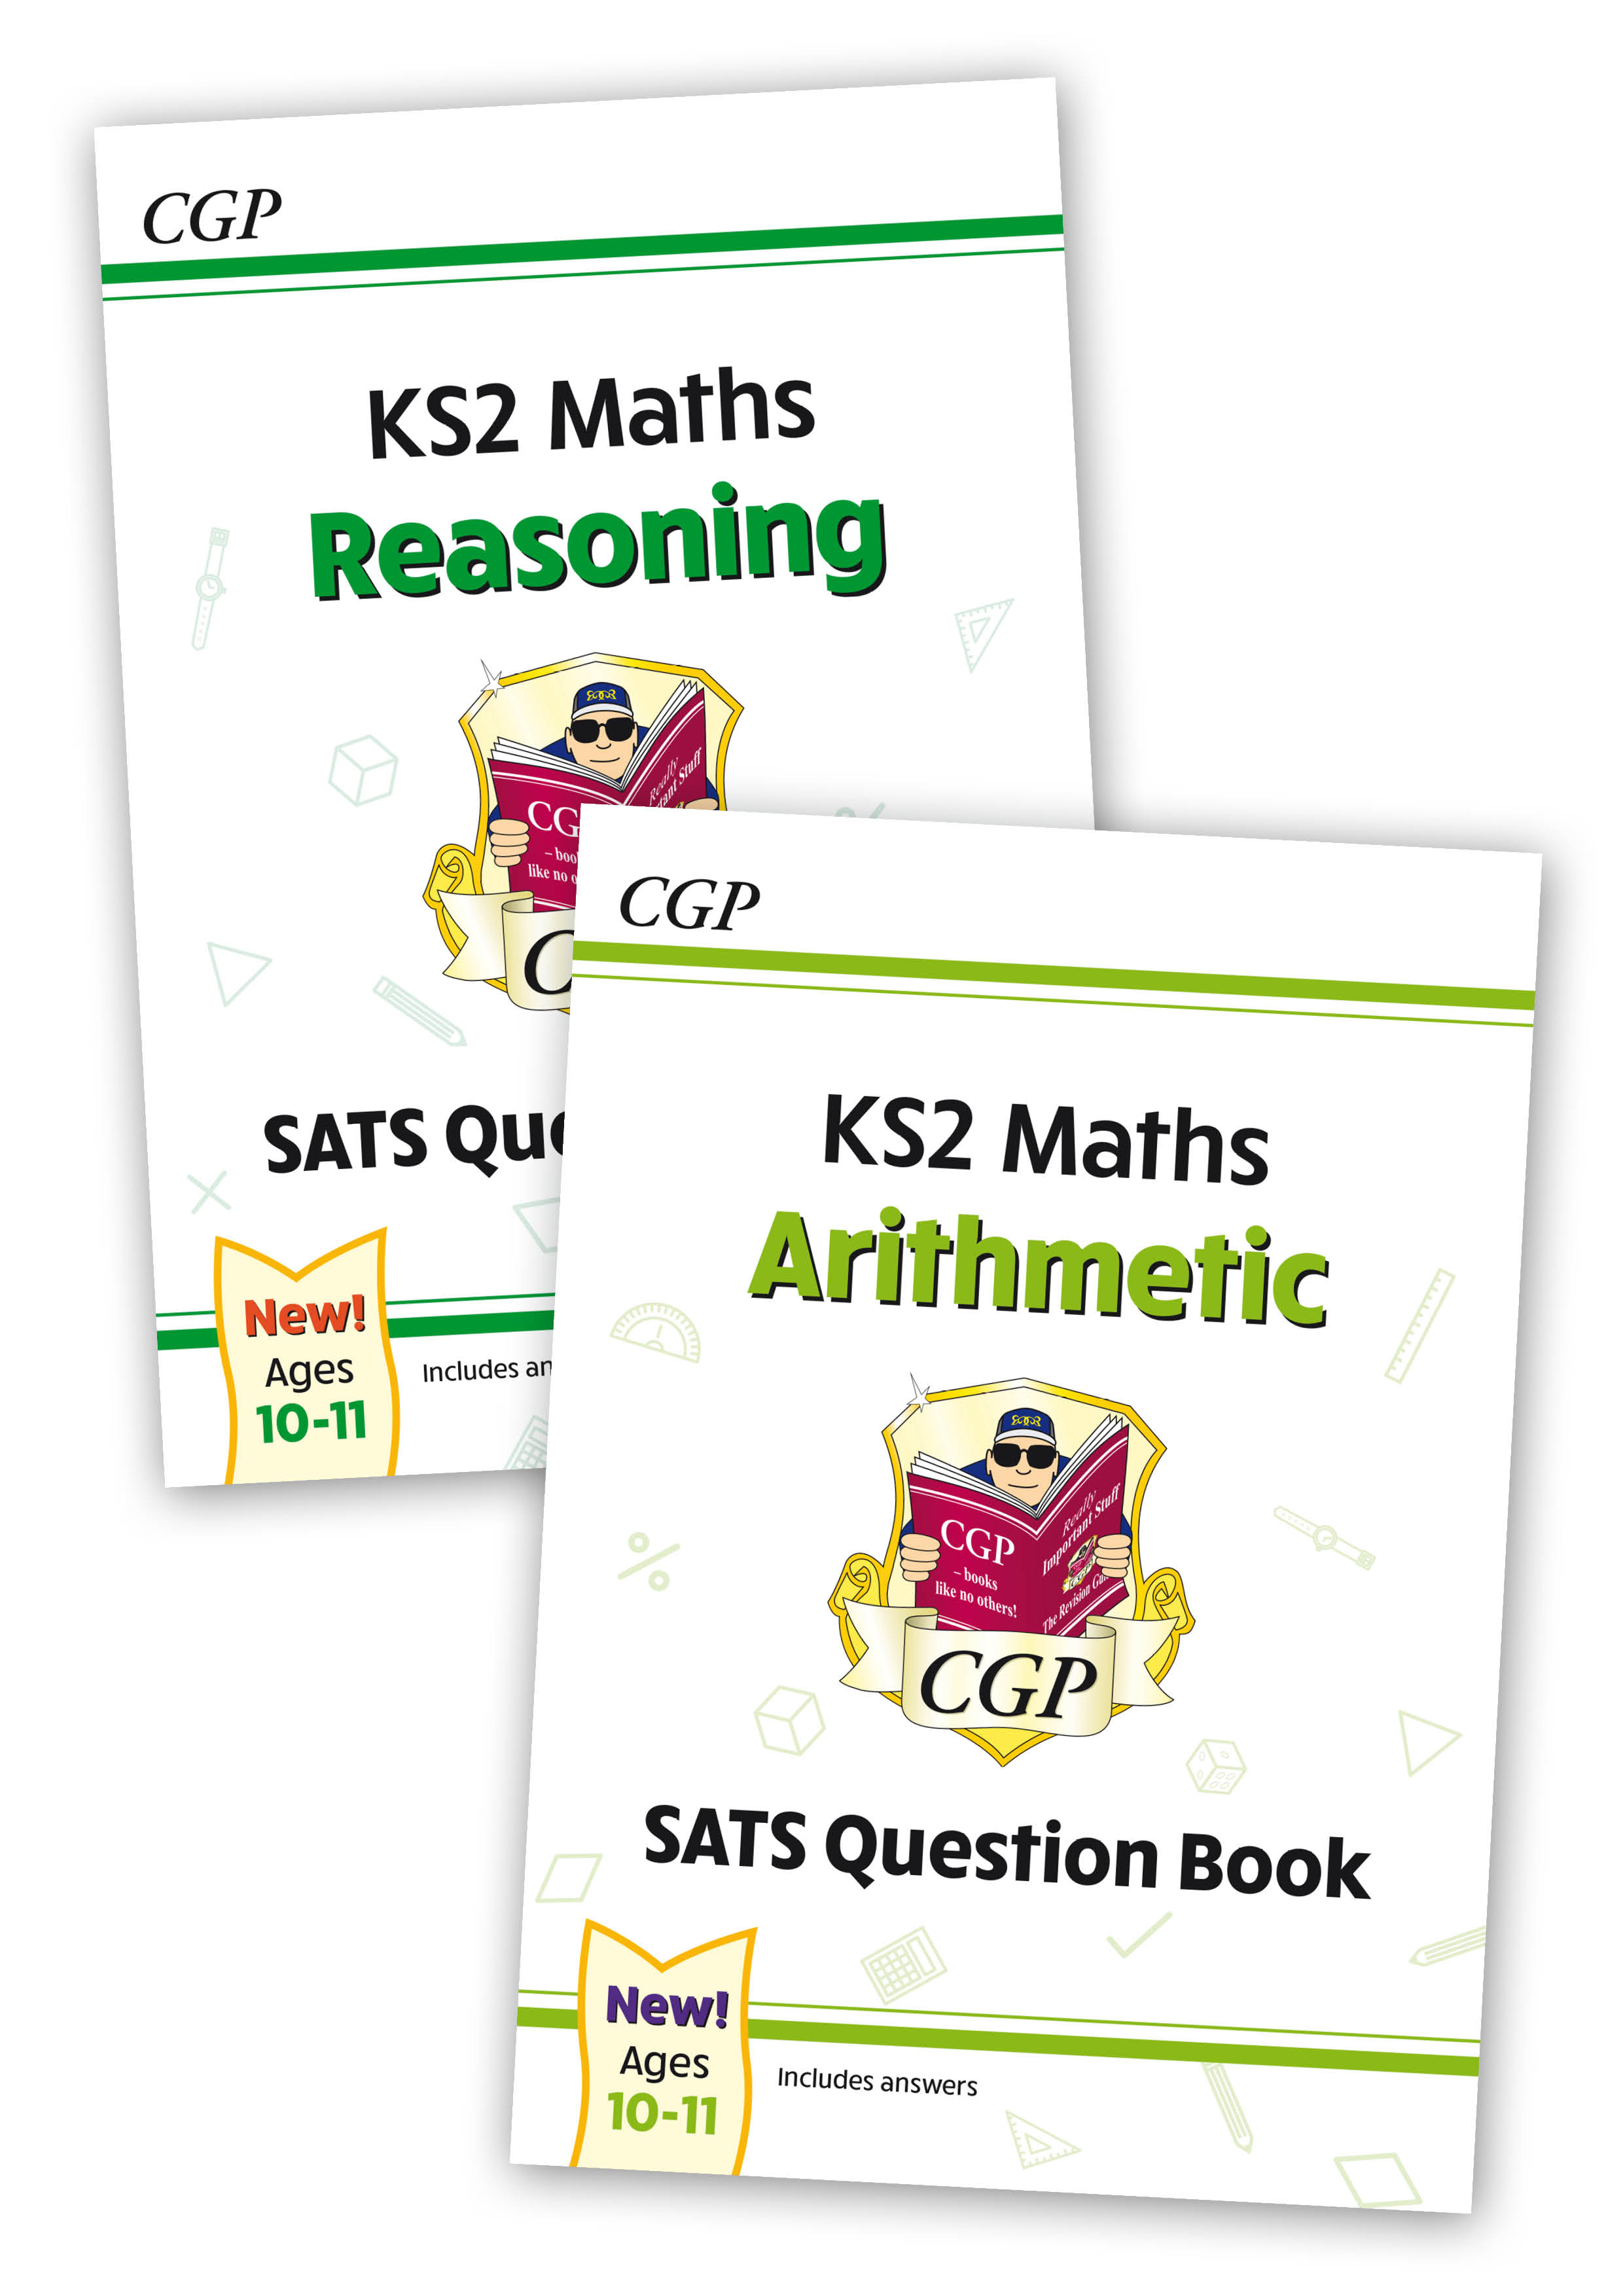 M6QB21 - New KS2 Maths SATS Question Books: Reasoning and Arithmetic 2-book Bundle (Ages 10-11)